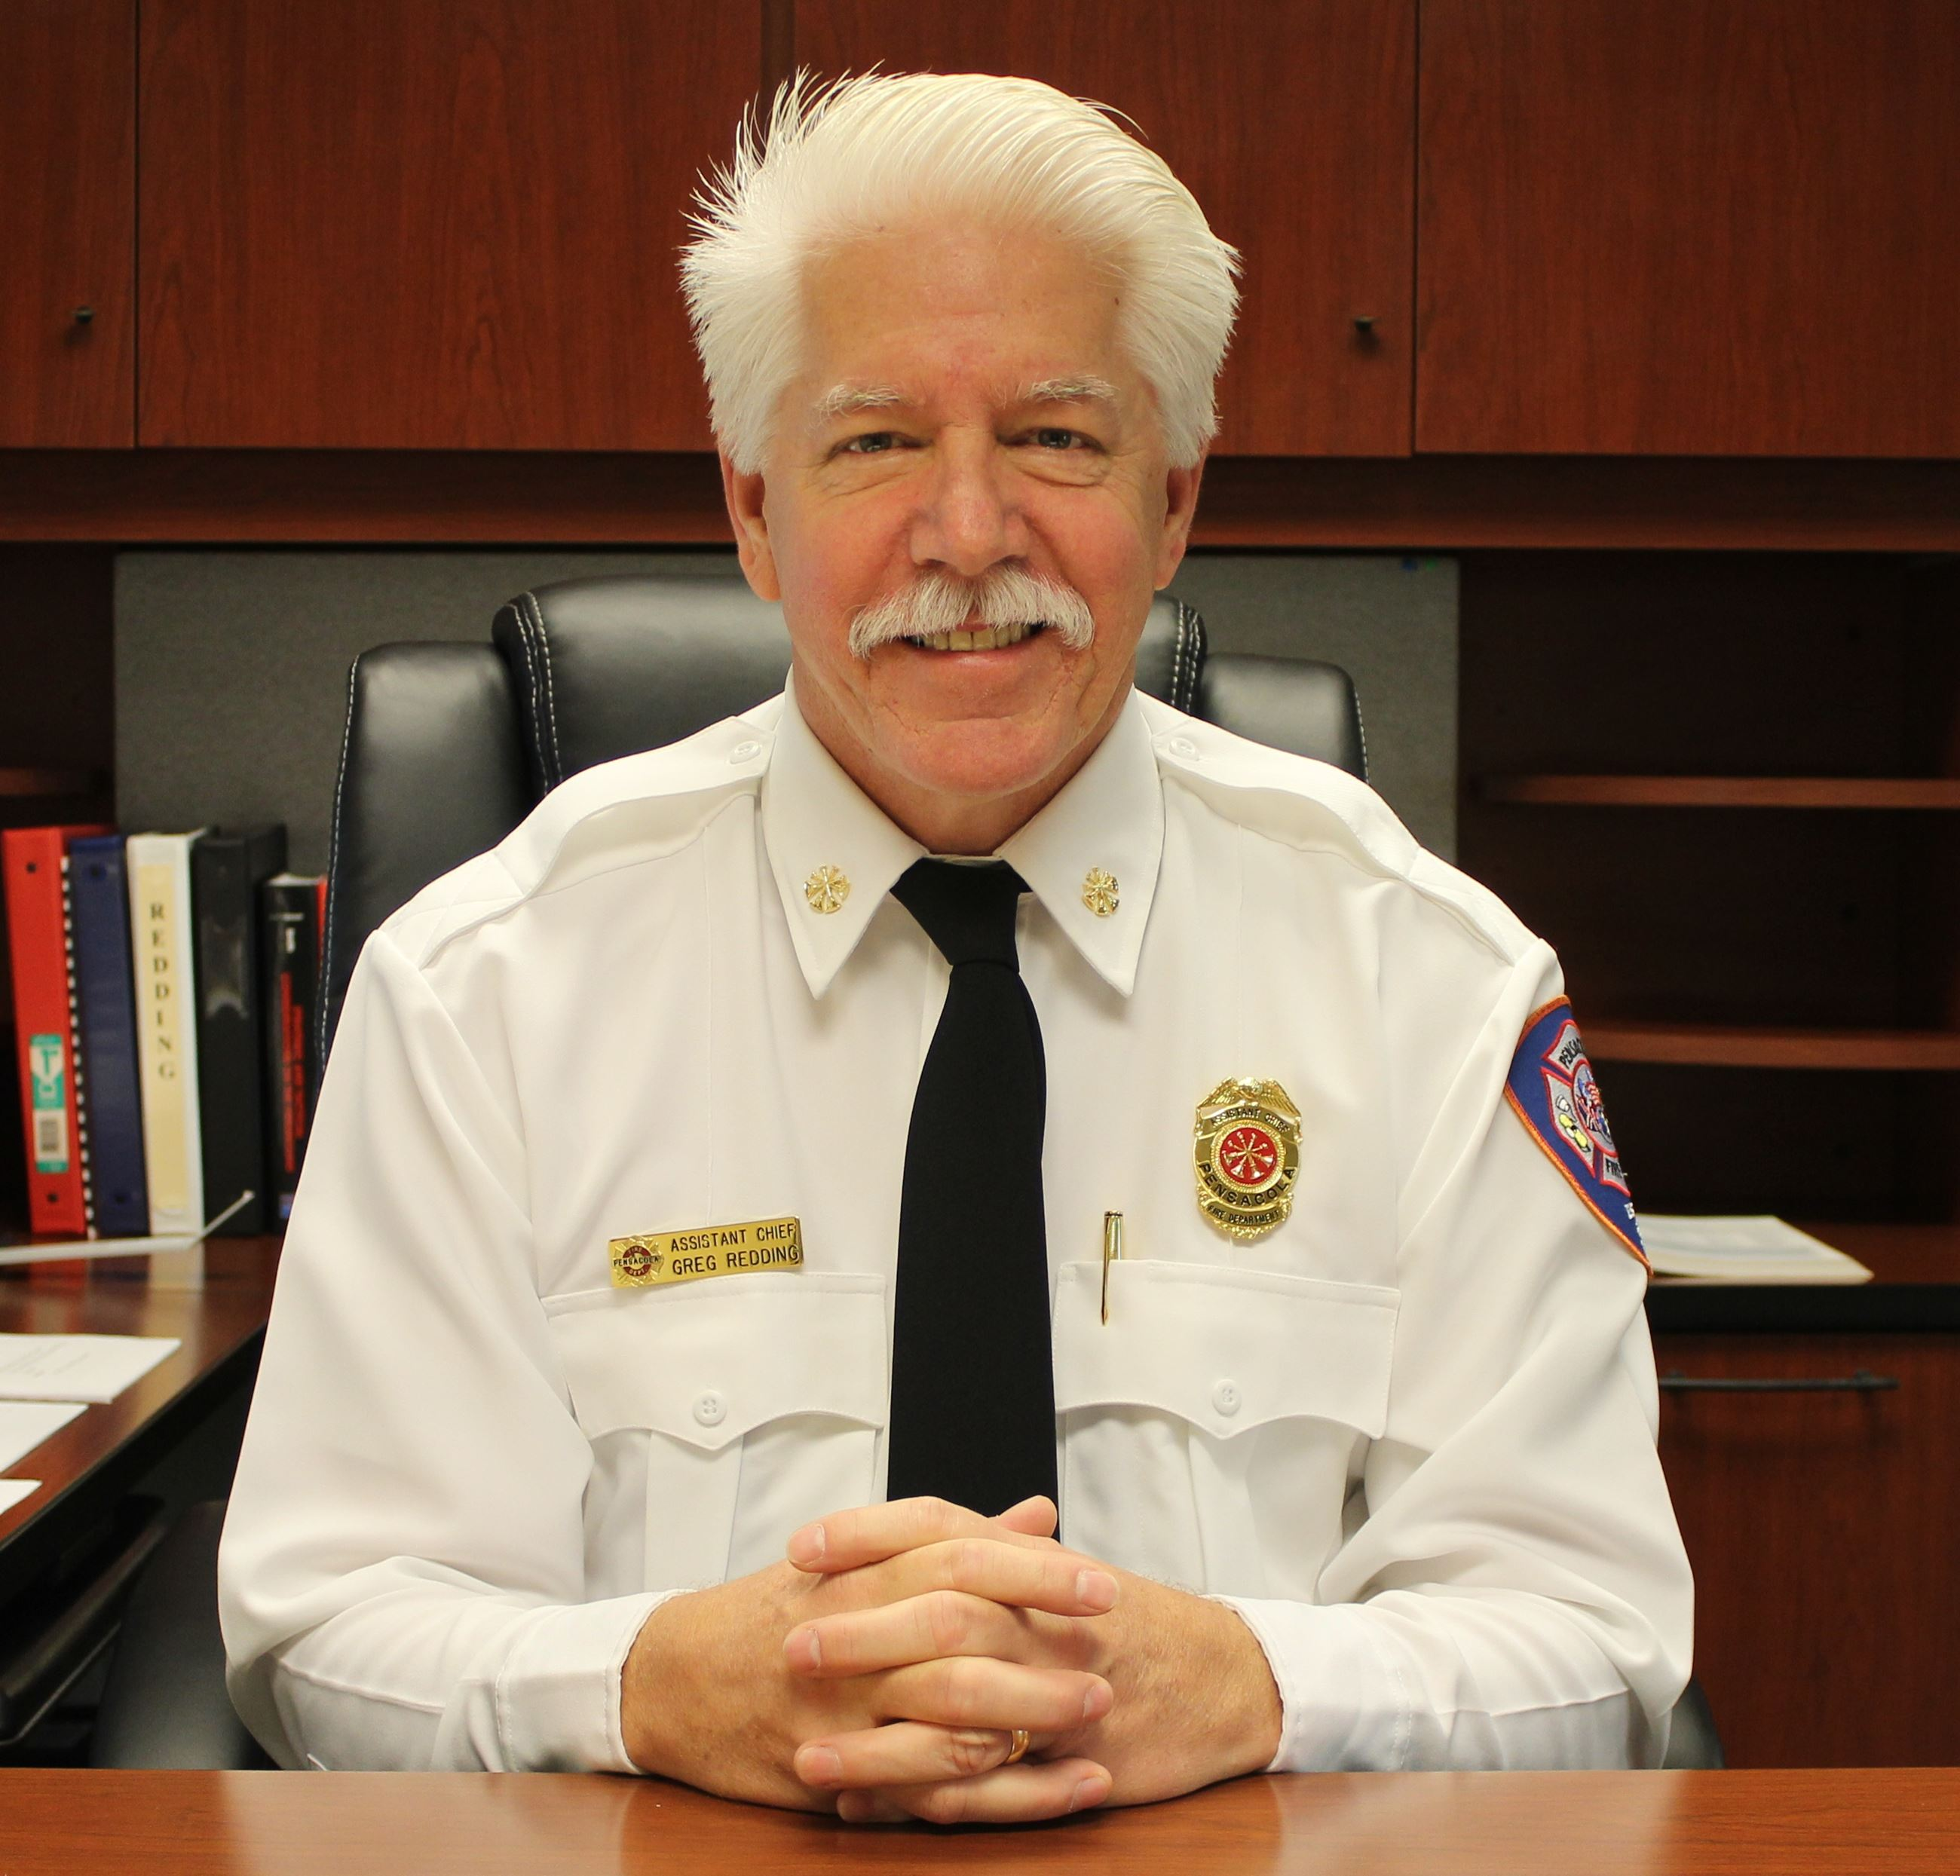 Assistant Chief Redding